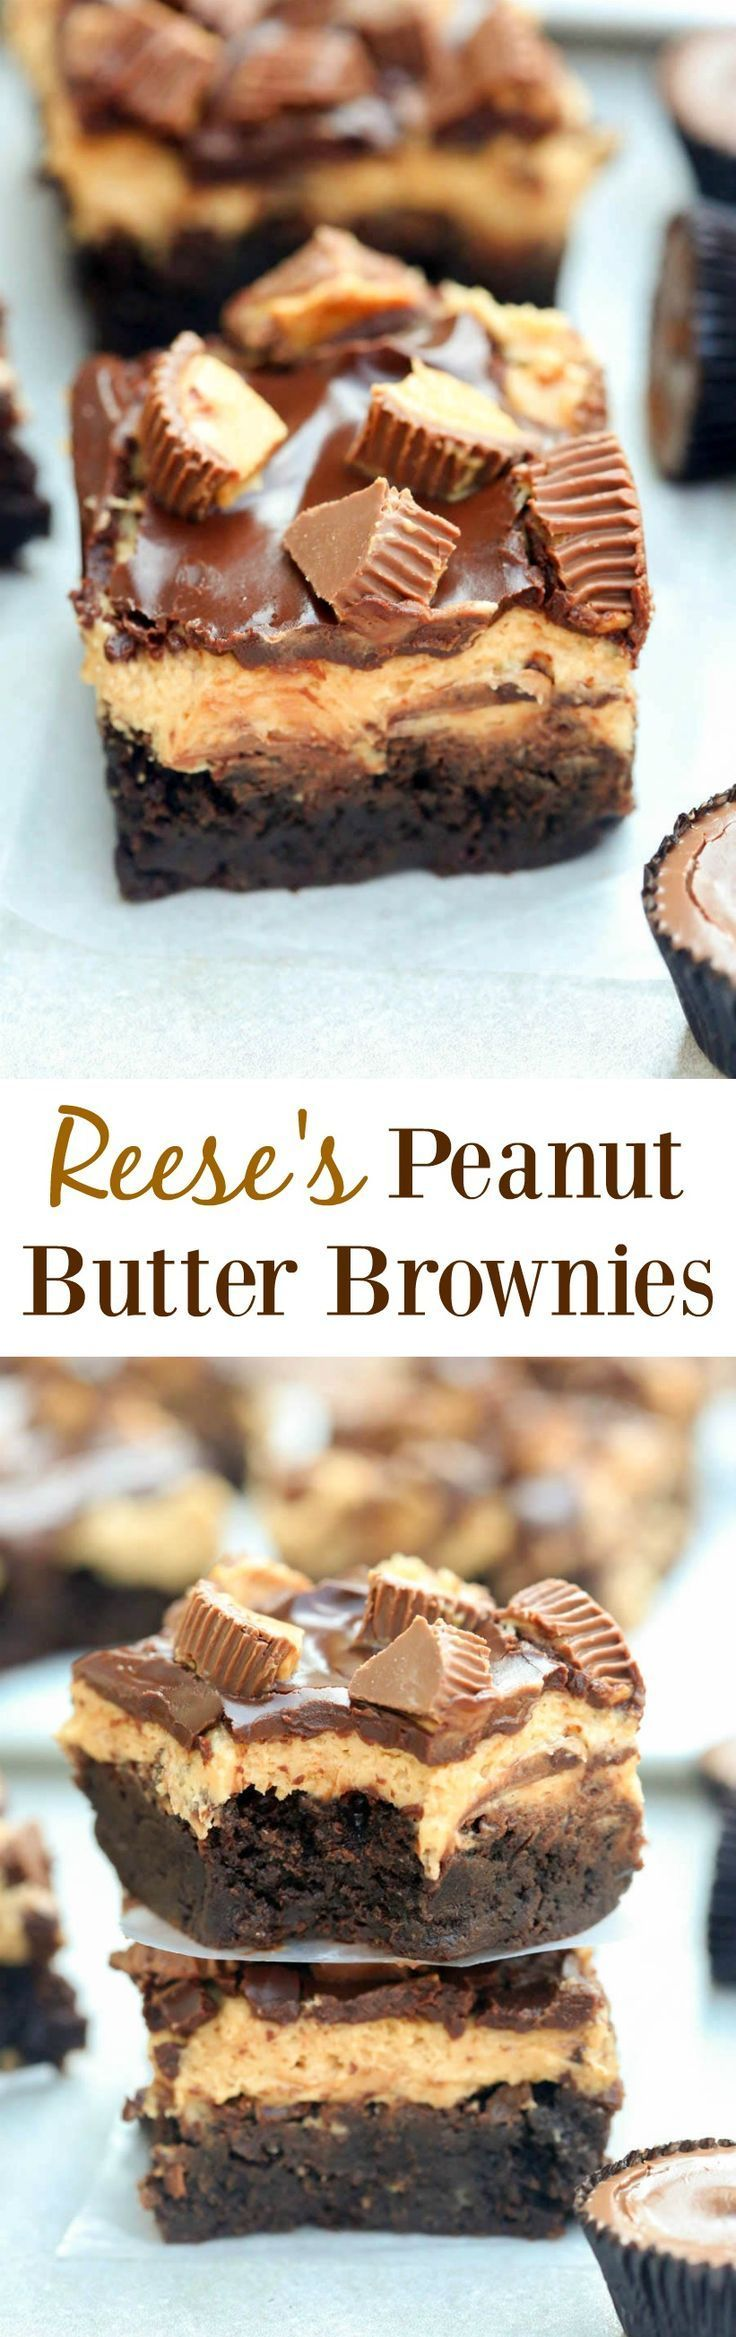 Reese's Peanut Butter Brownies   - Recipes